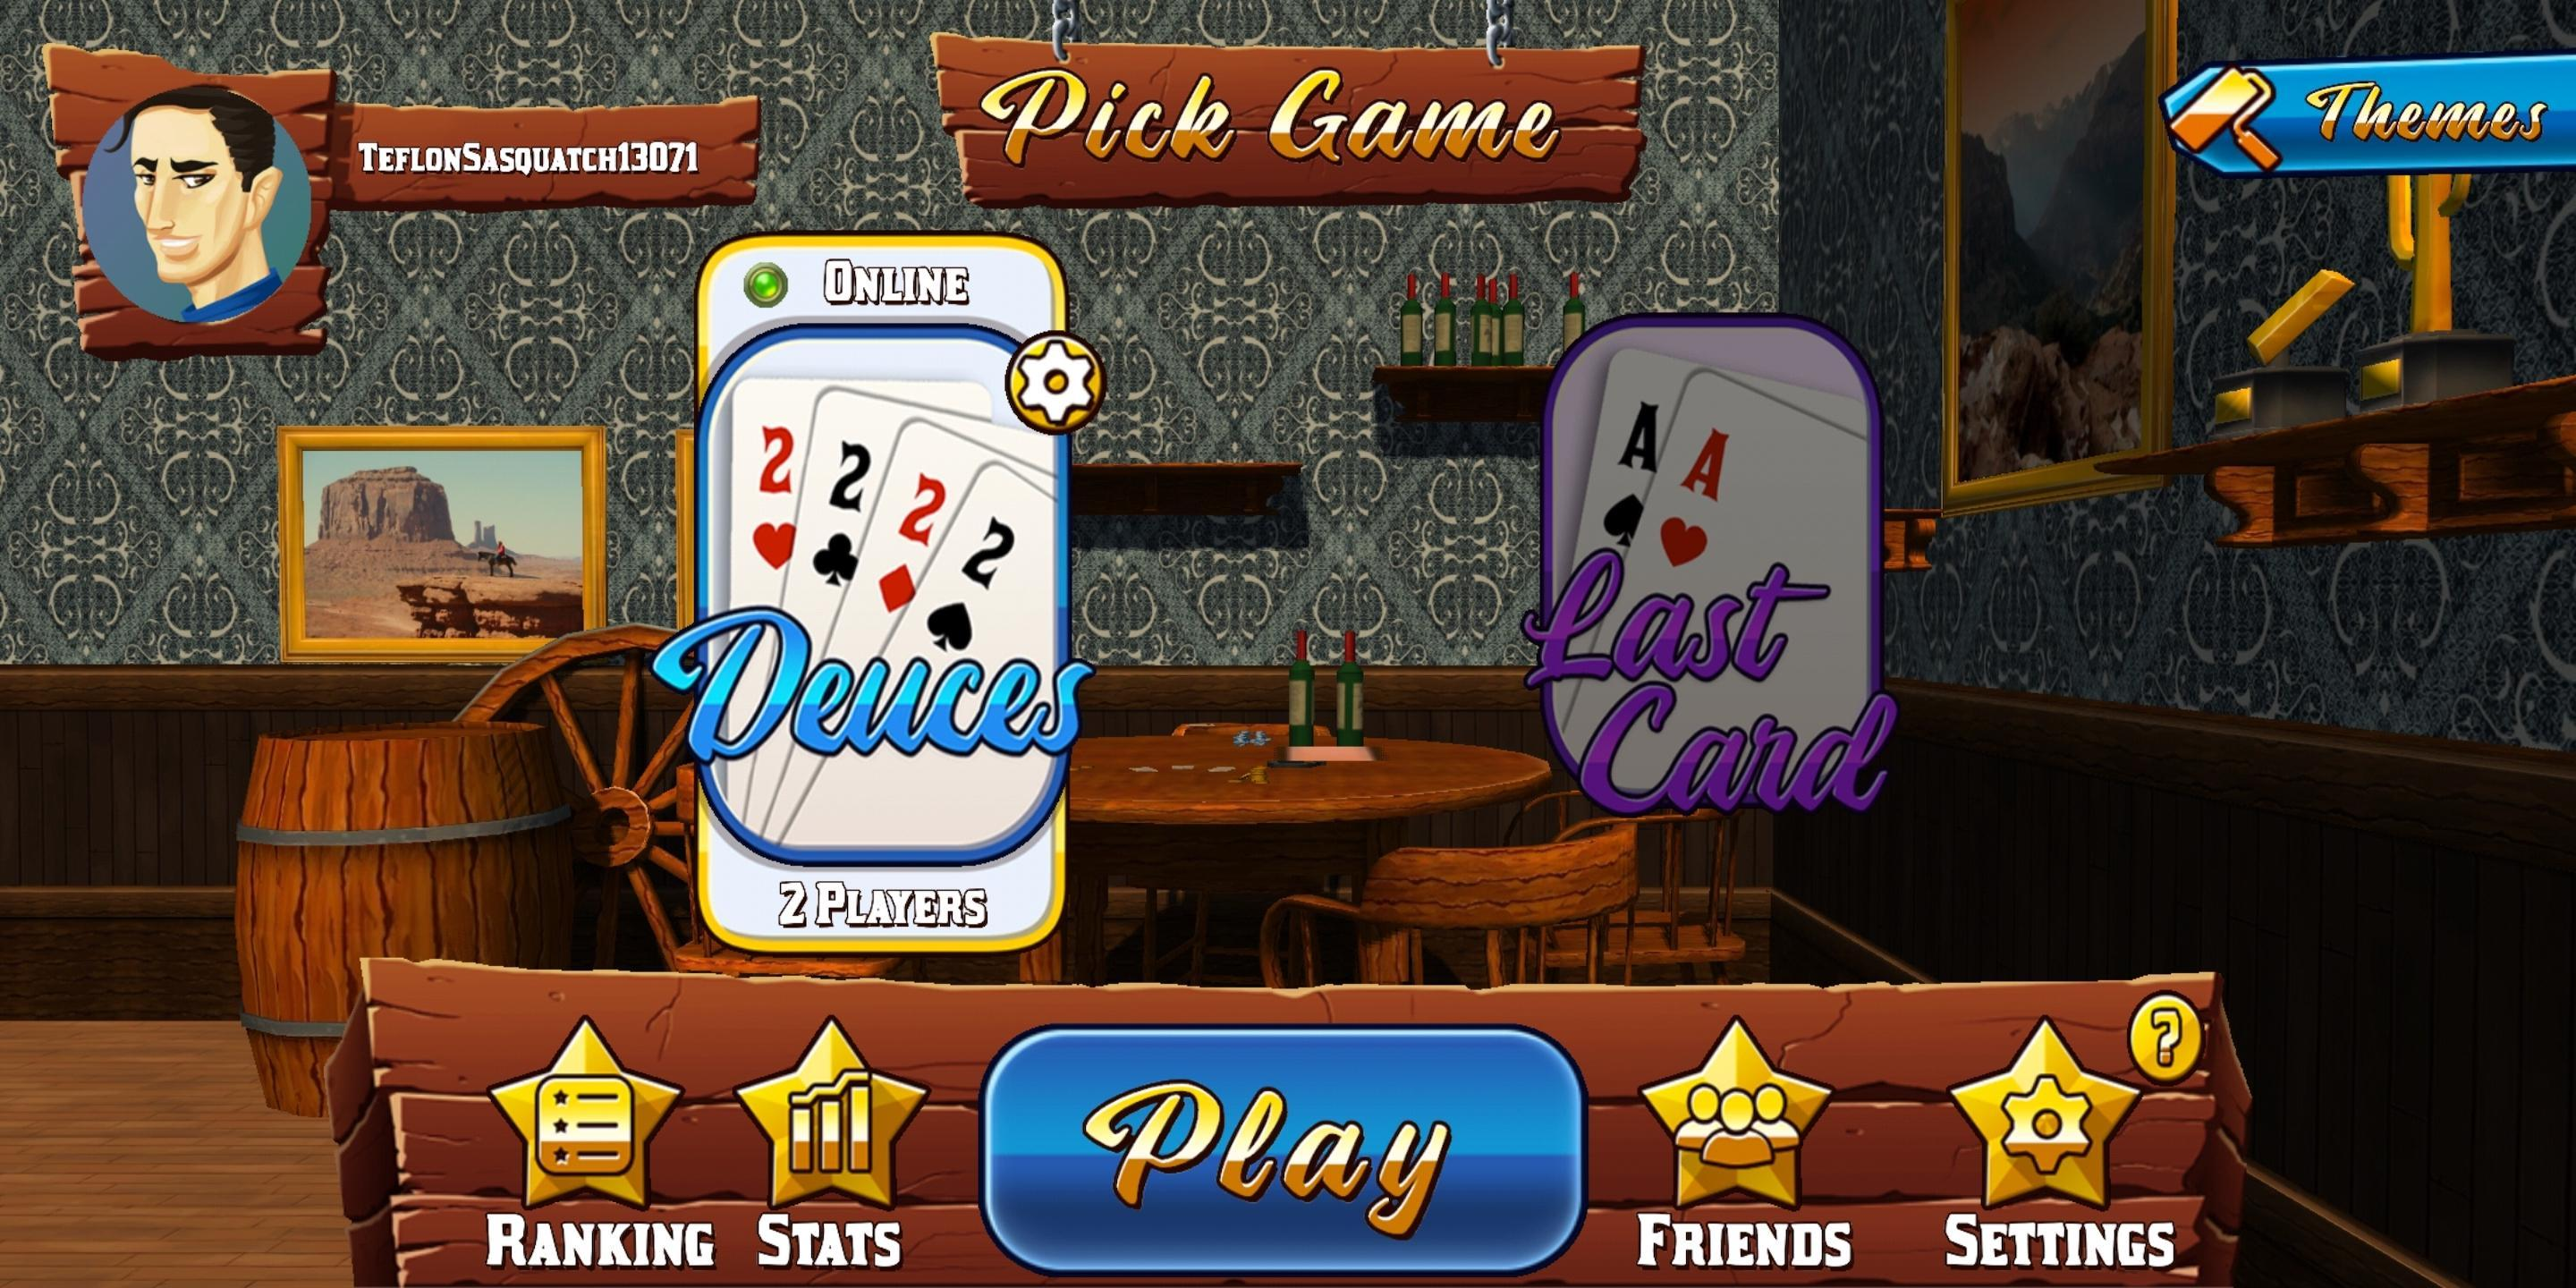 Card Room Deuces & Last Card, Playing Cards 1.2.3 Screenshot 1